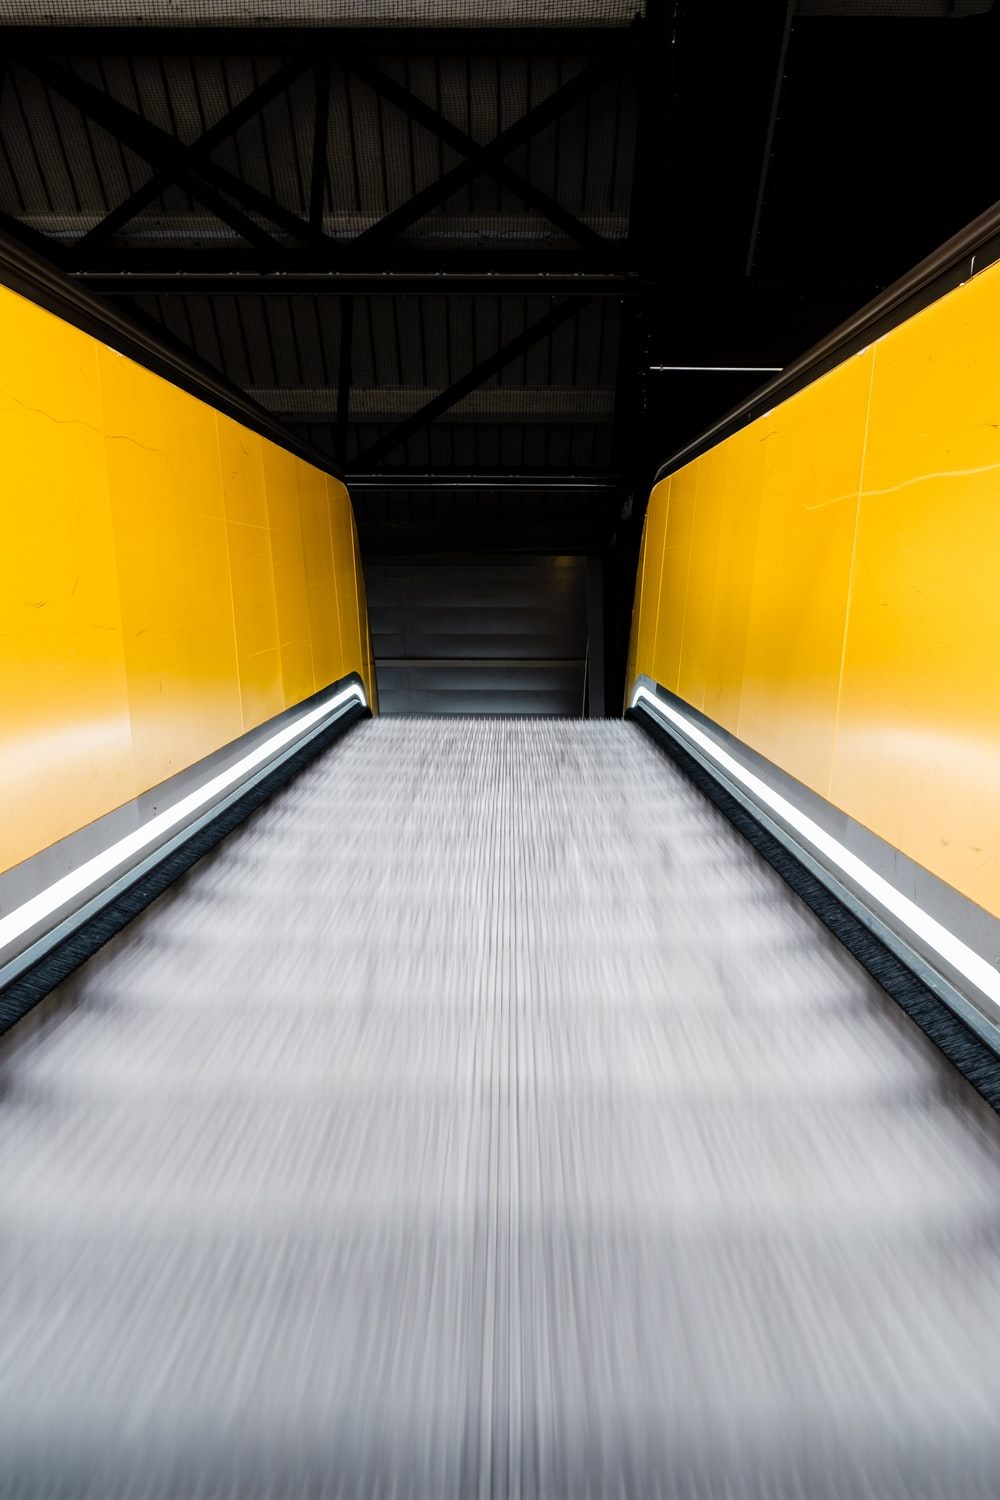 moving escalator with yellow handrails